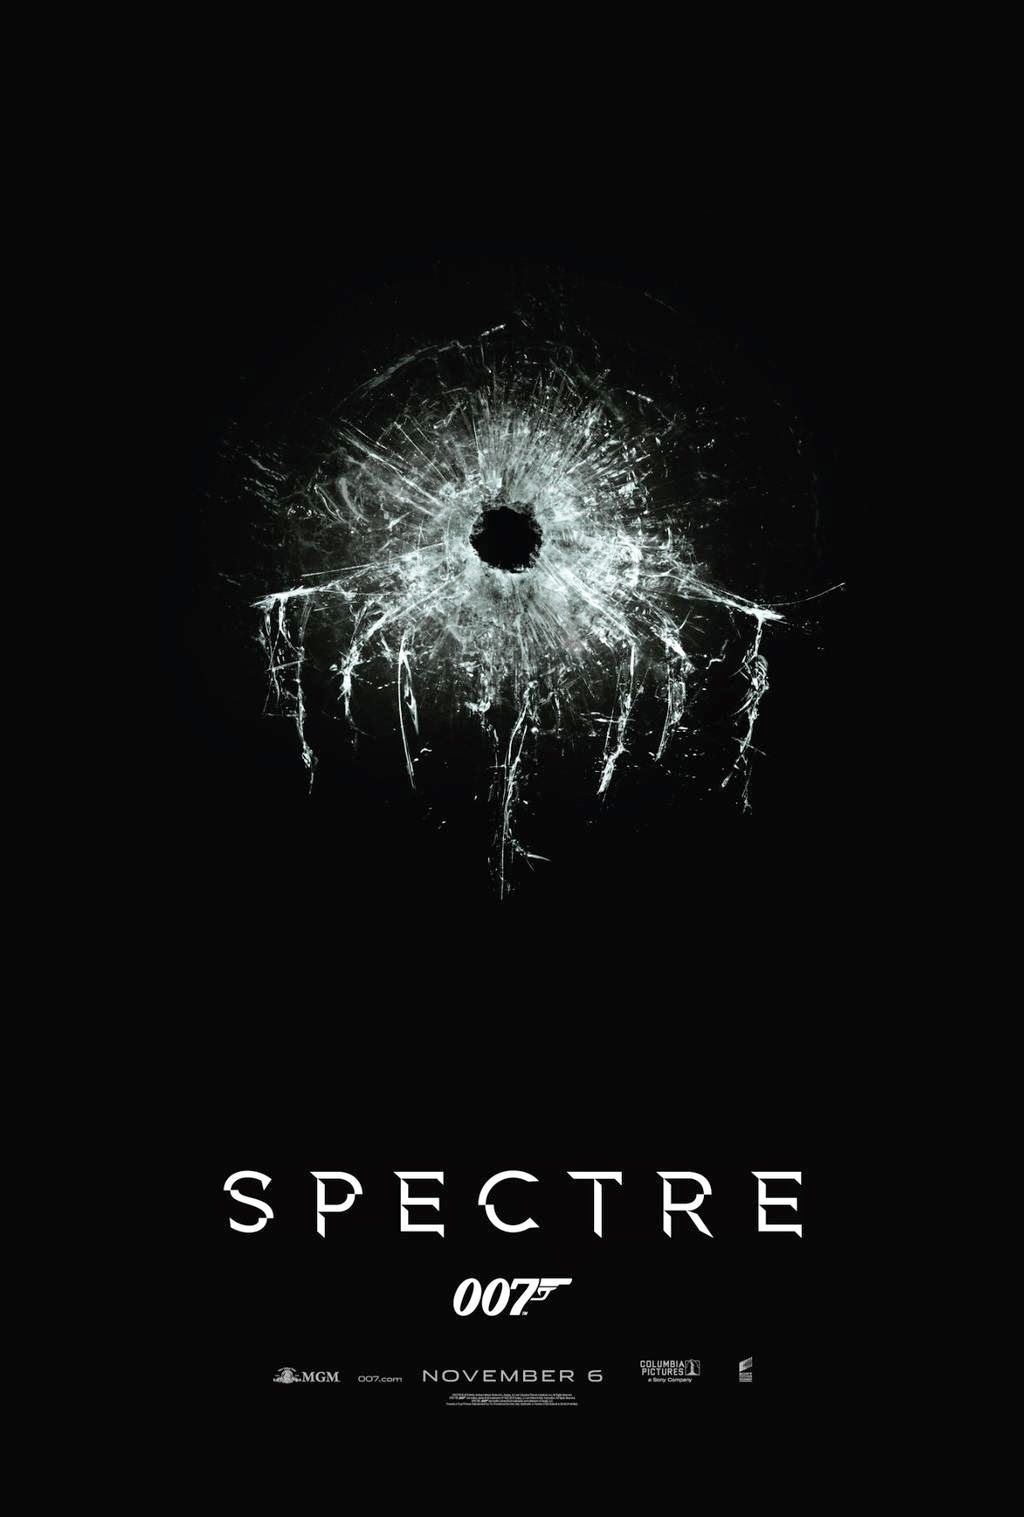 Spectre James Bond Movie Trailer and Poster